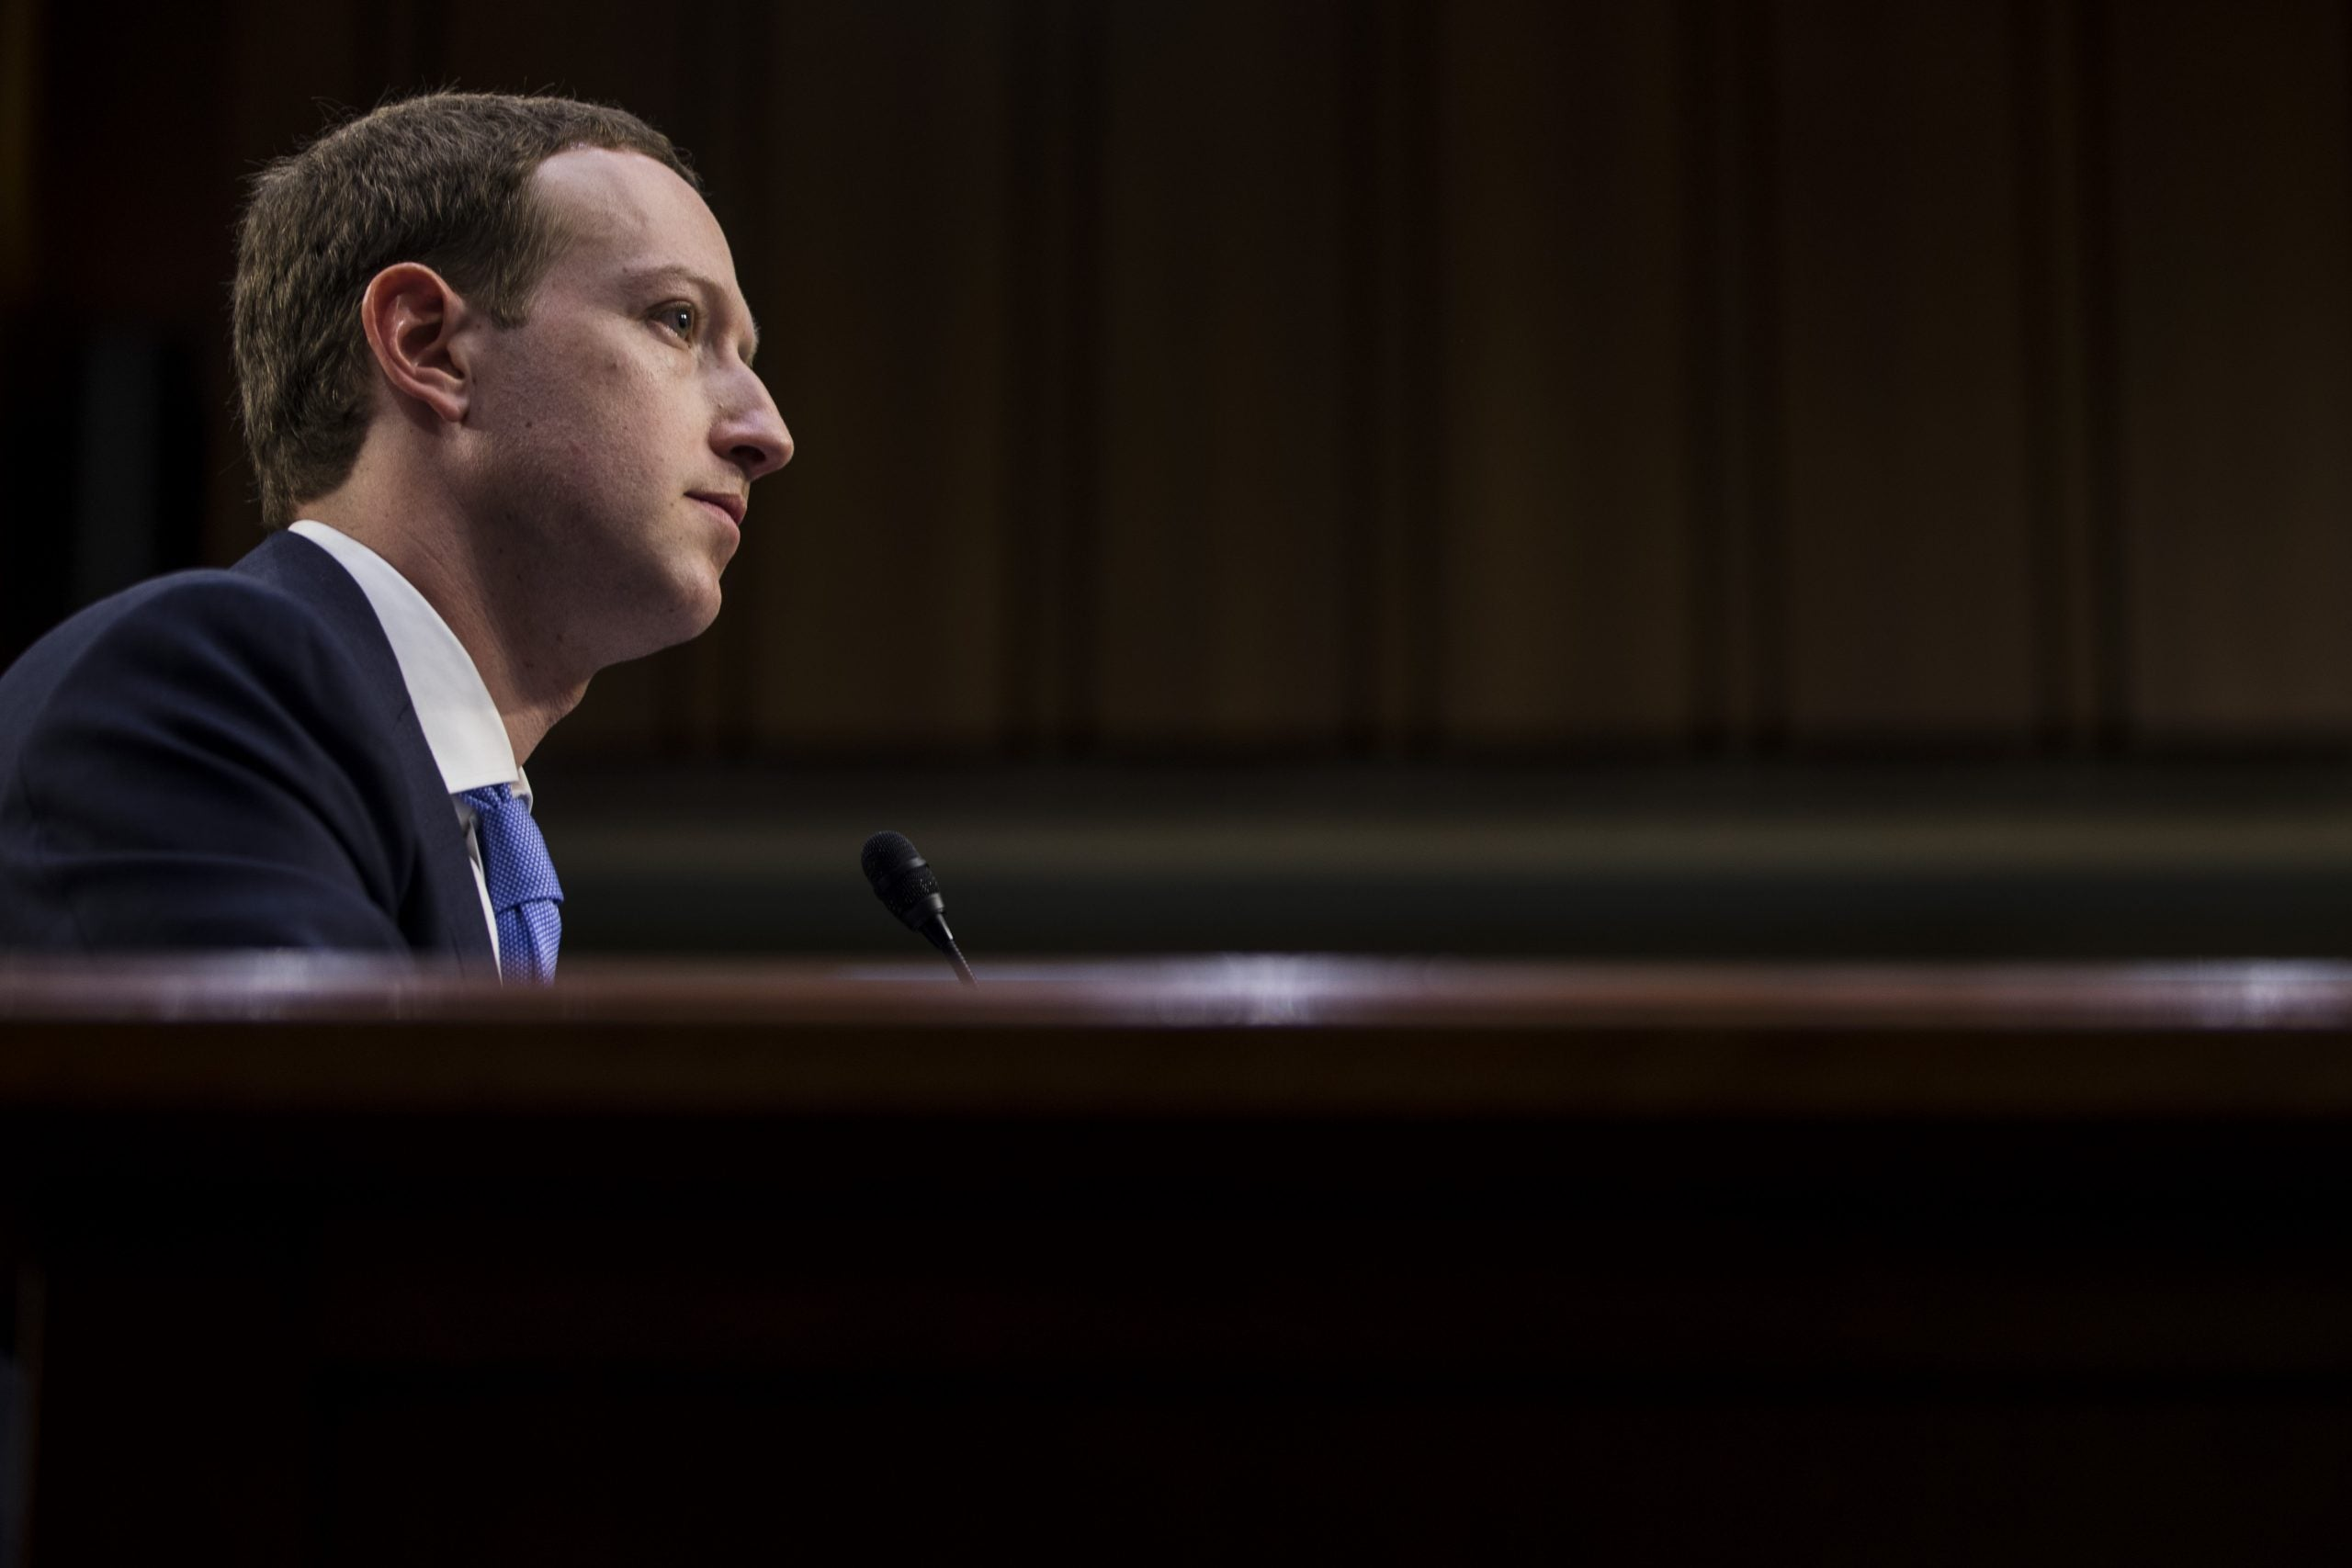 Why is Mark Zuckerberg gambling with the principles of the open web?